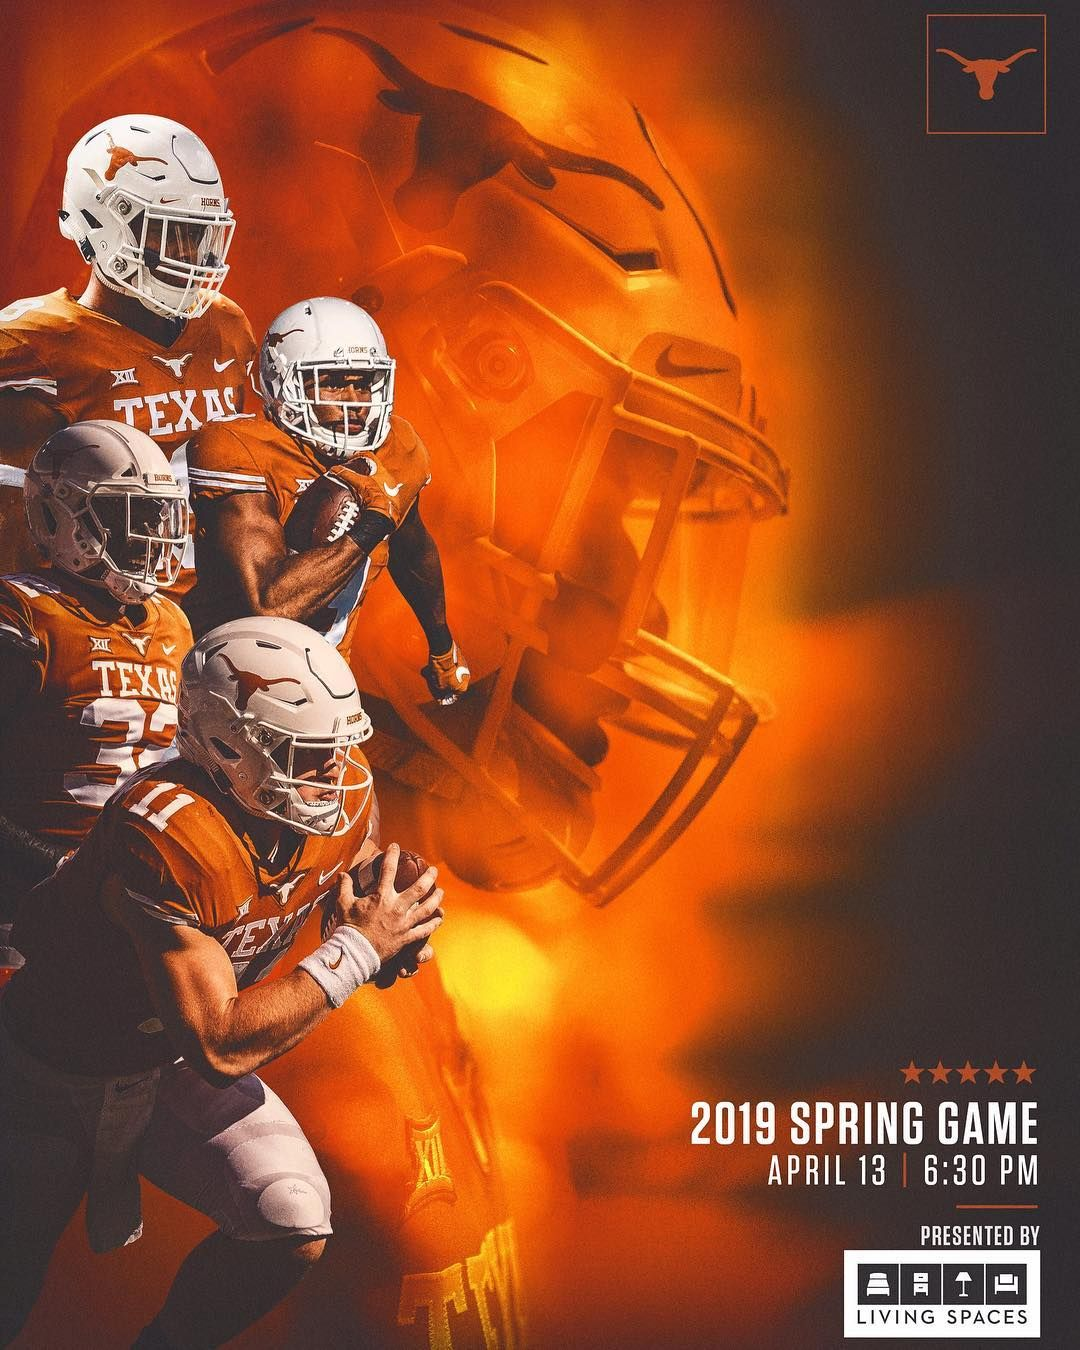 Texas Football On Instagram The 2019 Texas Spring Game Will Take Place April 13 The Game Kicks Off At 6 30 P Football Poster Texas Football Nfl Football Art